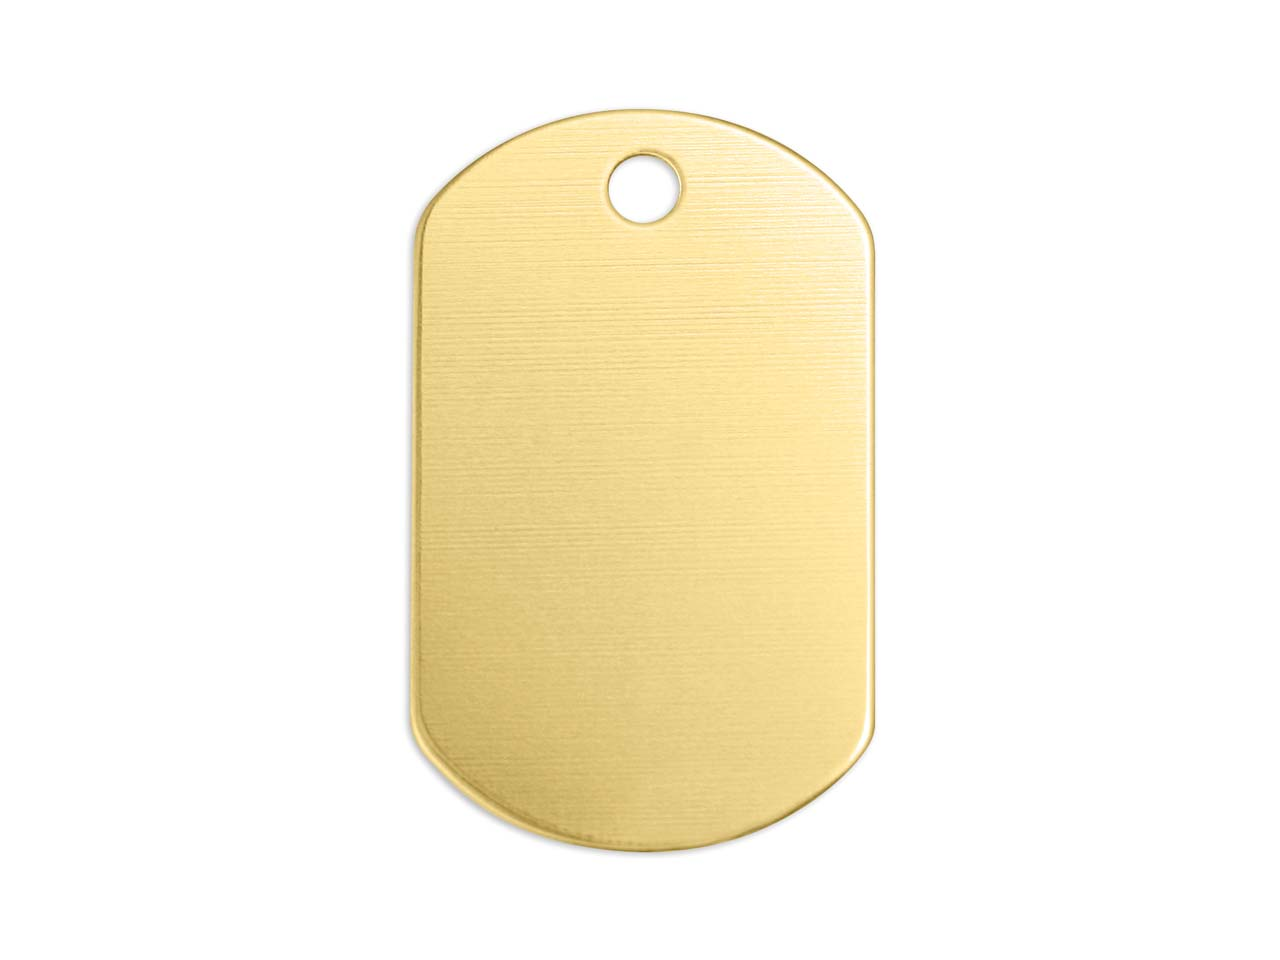 Impressart Brass Dog Tag 32x19mm   Stamping Blank Pack of 4